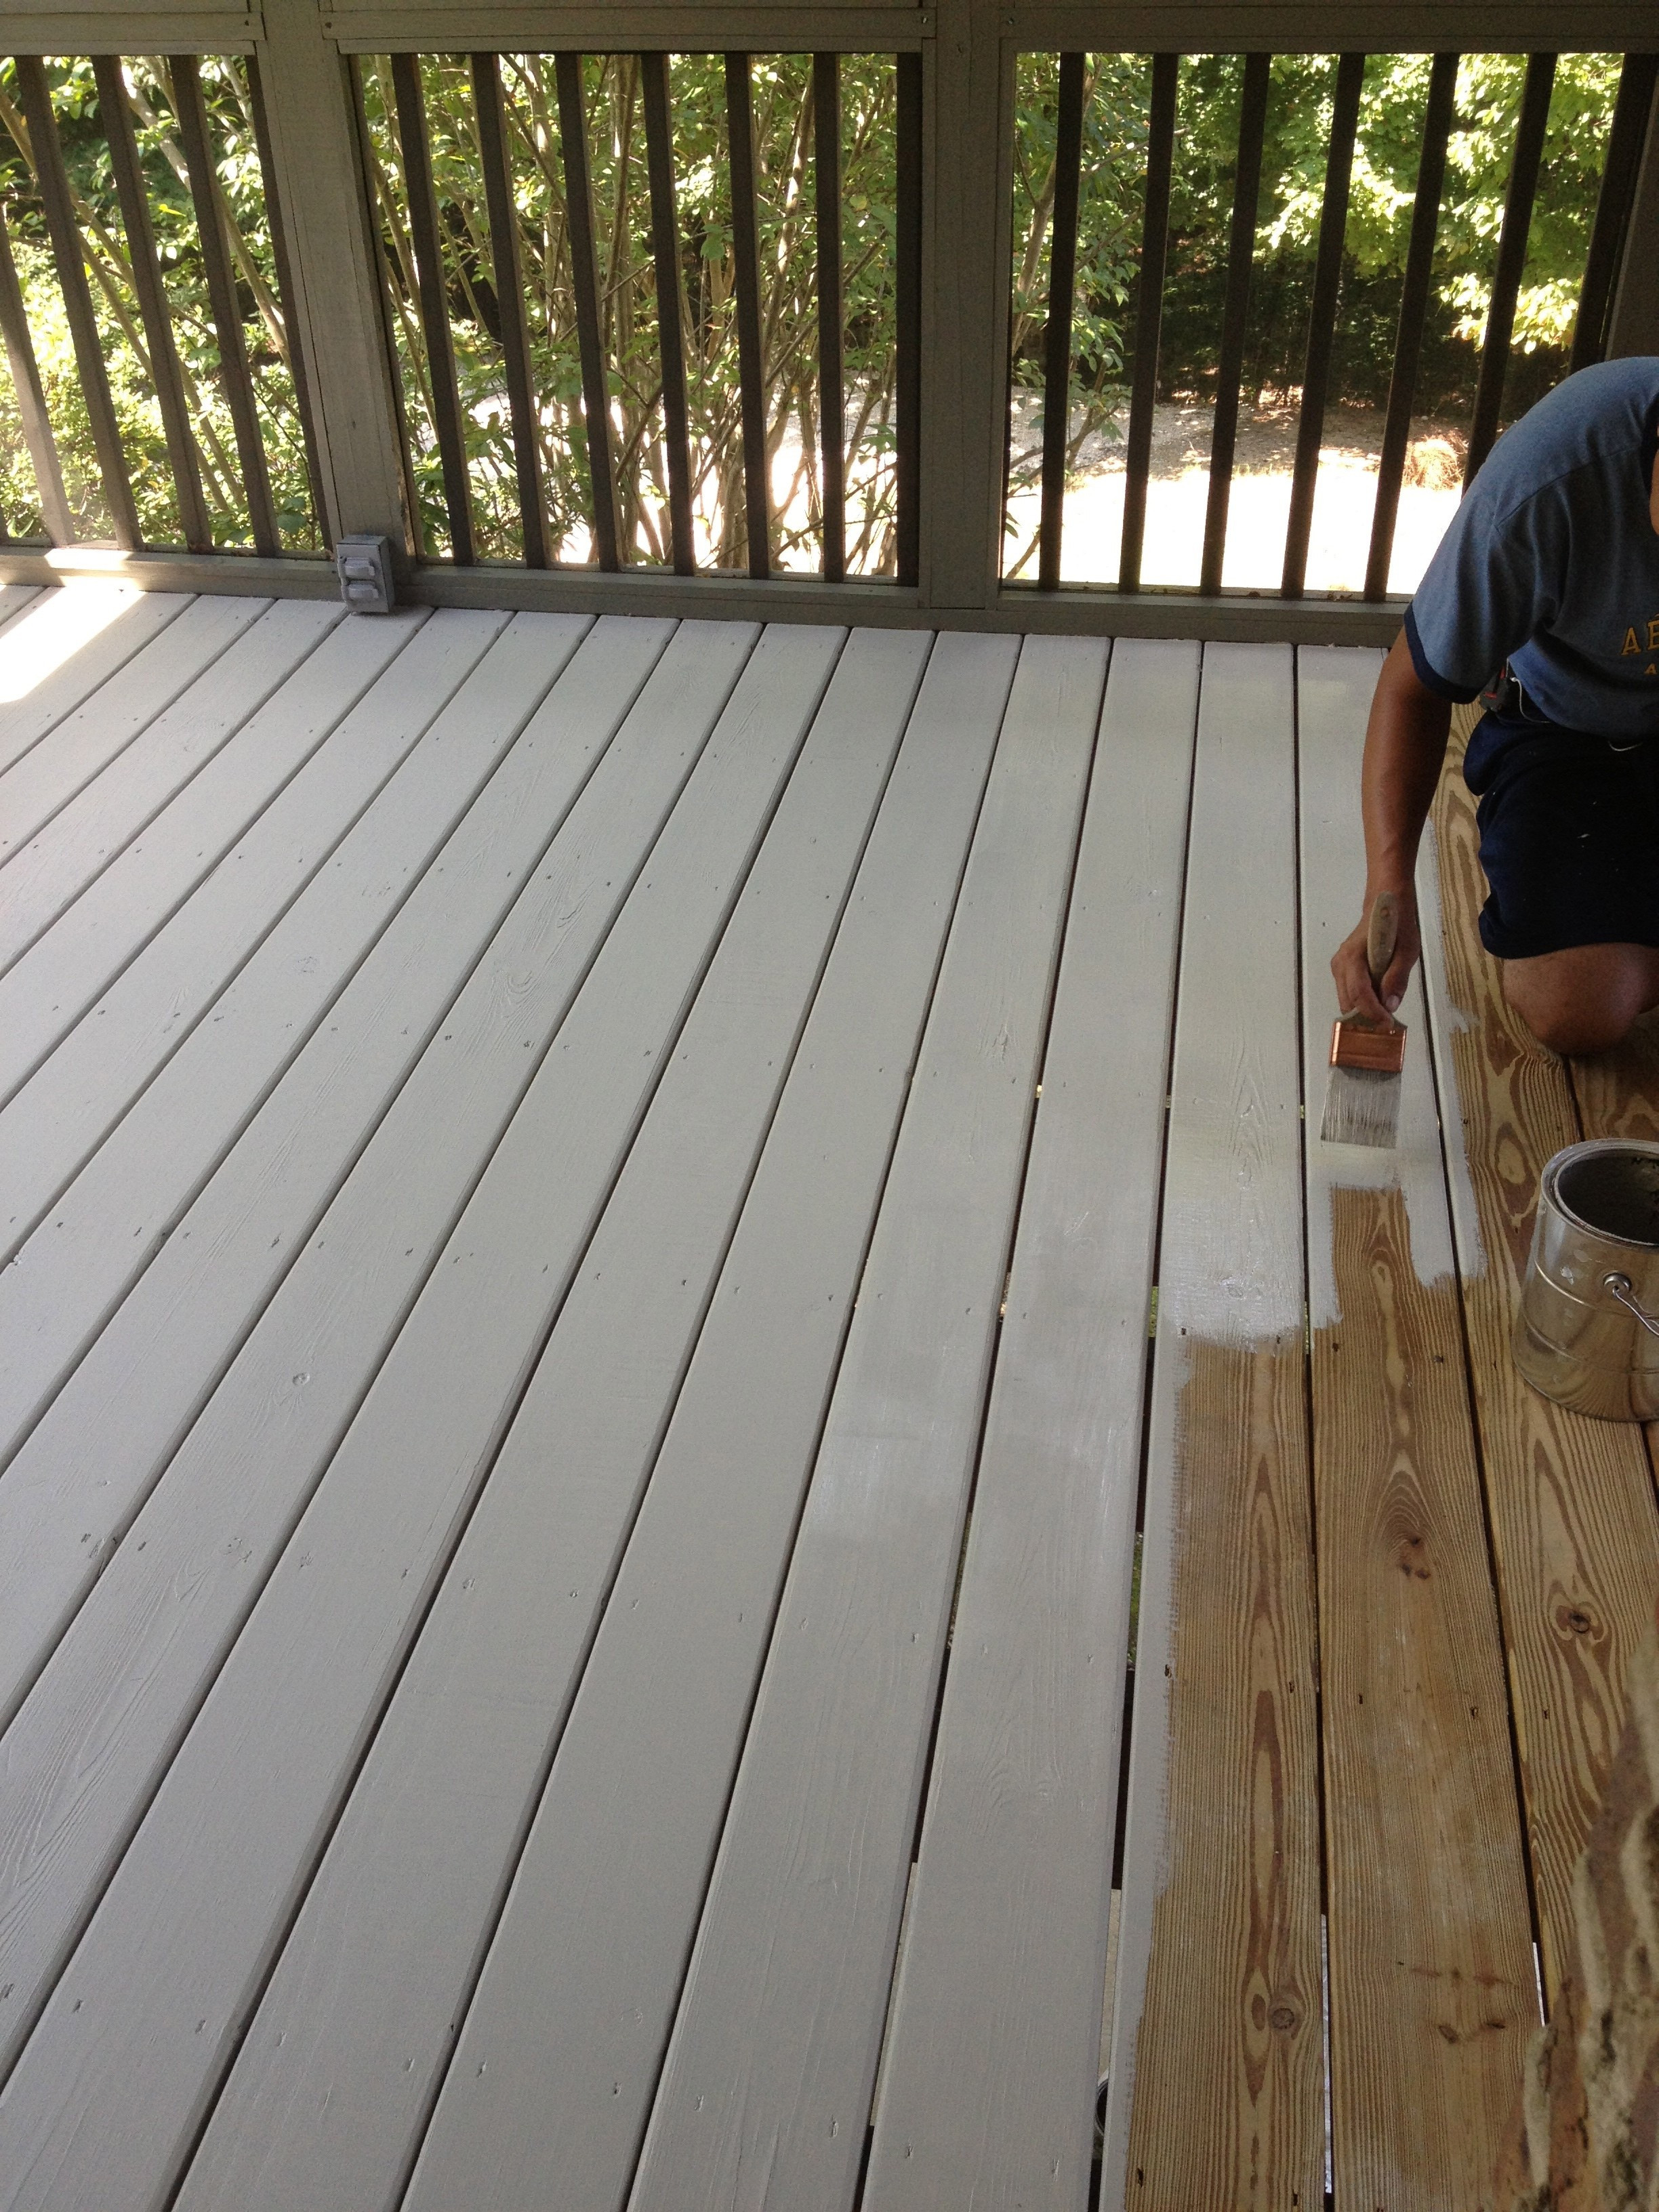 blue ridge hardwood flooring home depot of deck plans home depot inspirational 30 beautiful graph deck material with regard to deck plans home depot fresh home depot lumber prices chart inspirational interior wood stain of deck